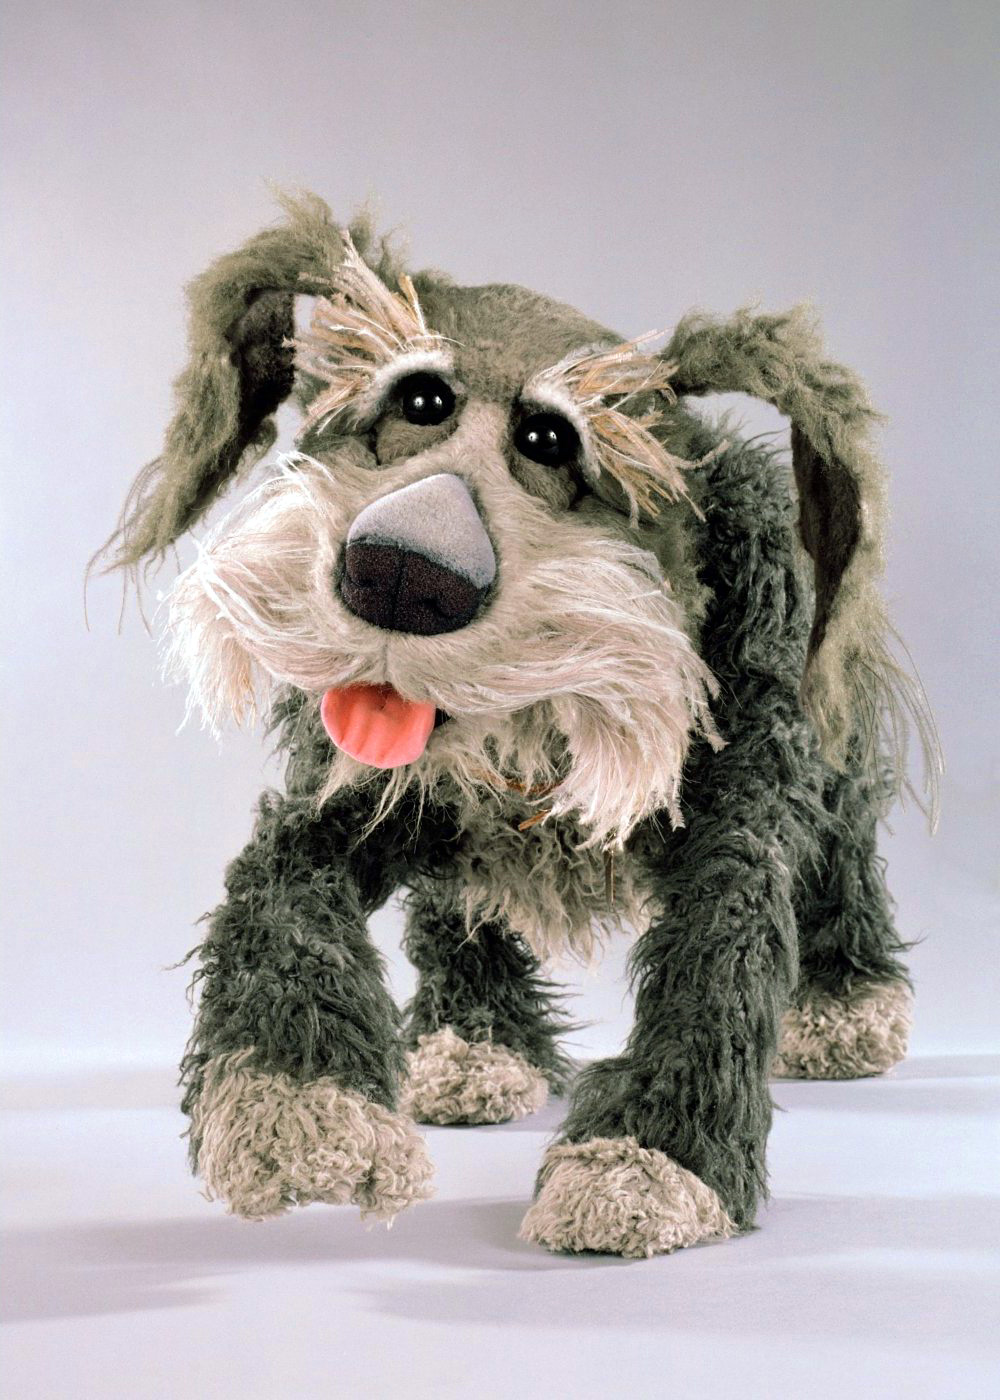 What Was The Name Of The Dog In Fraggle Rock